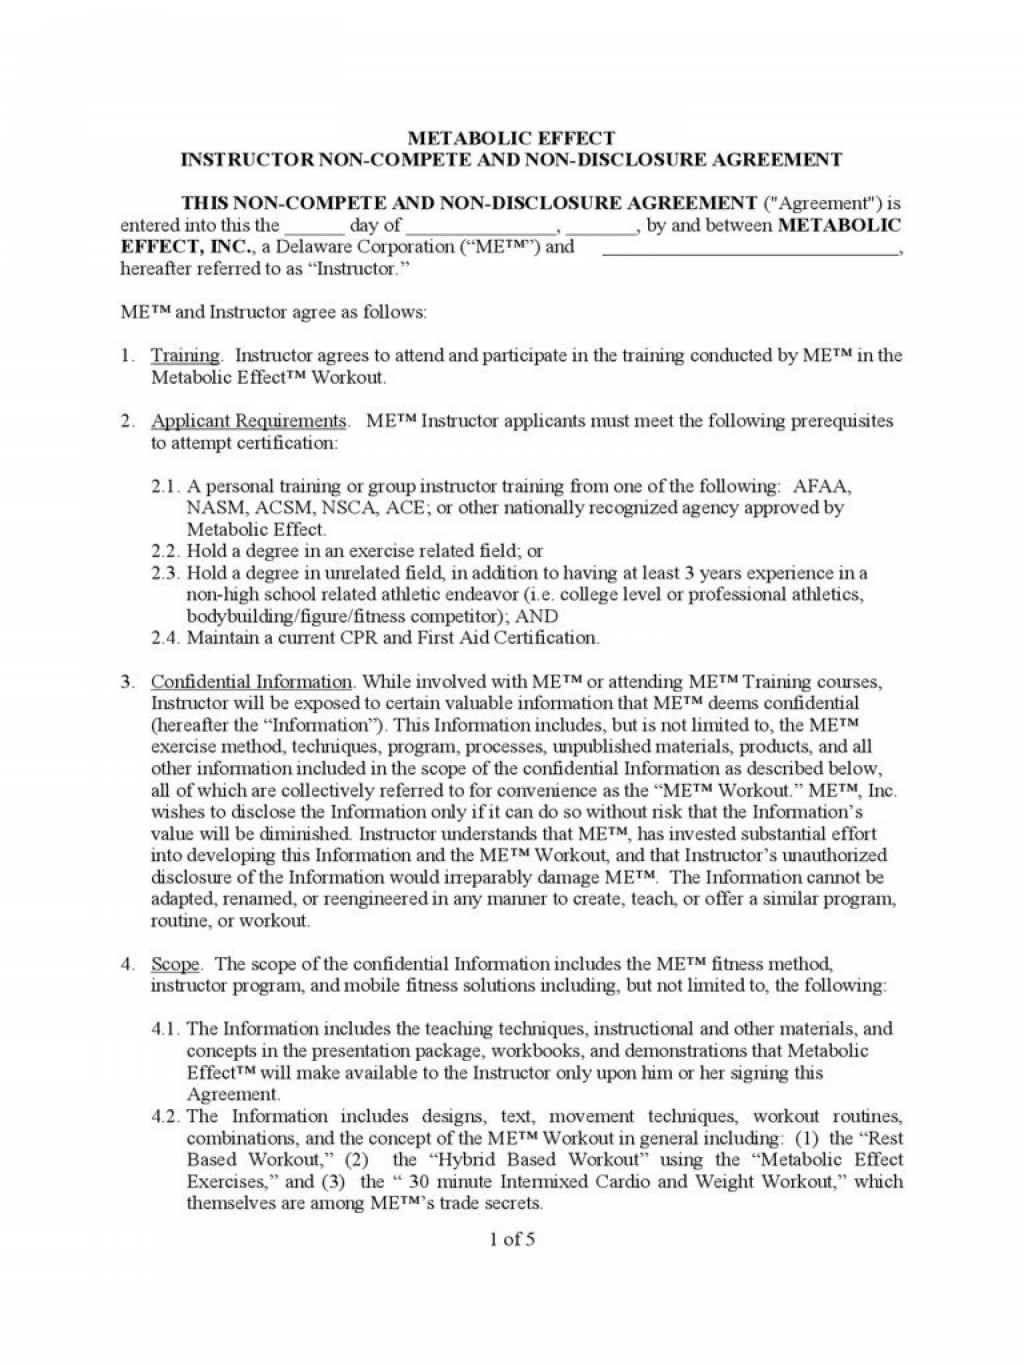 003 Impressive Non Compete Agreement Template Uk High Definition Large